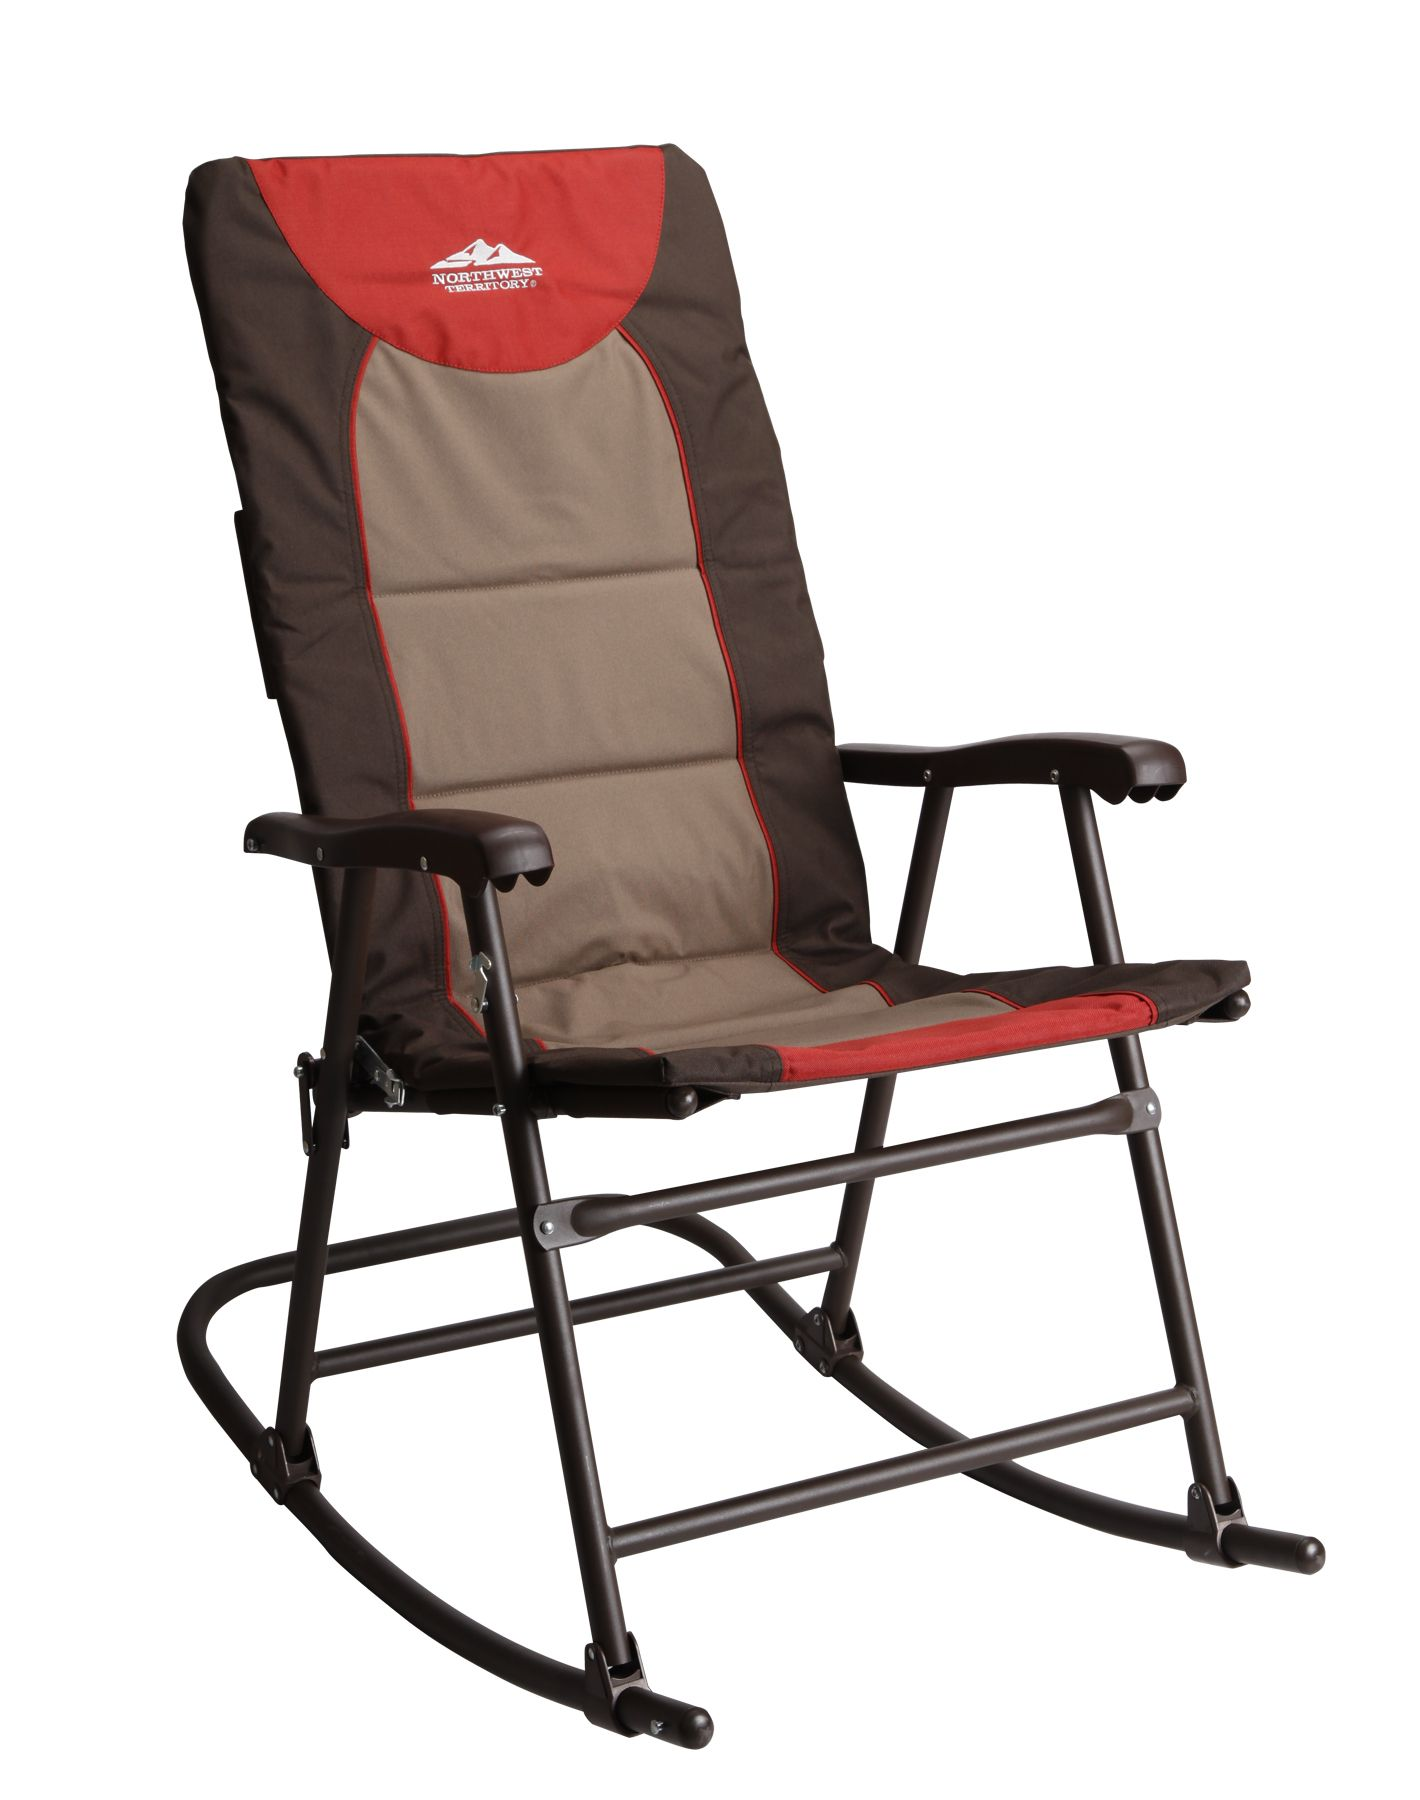 outdoor sports chairs racing game simulator chair northwest territory rocking fitness and